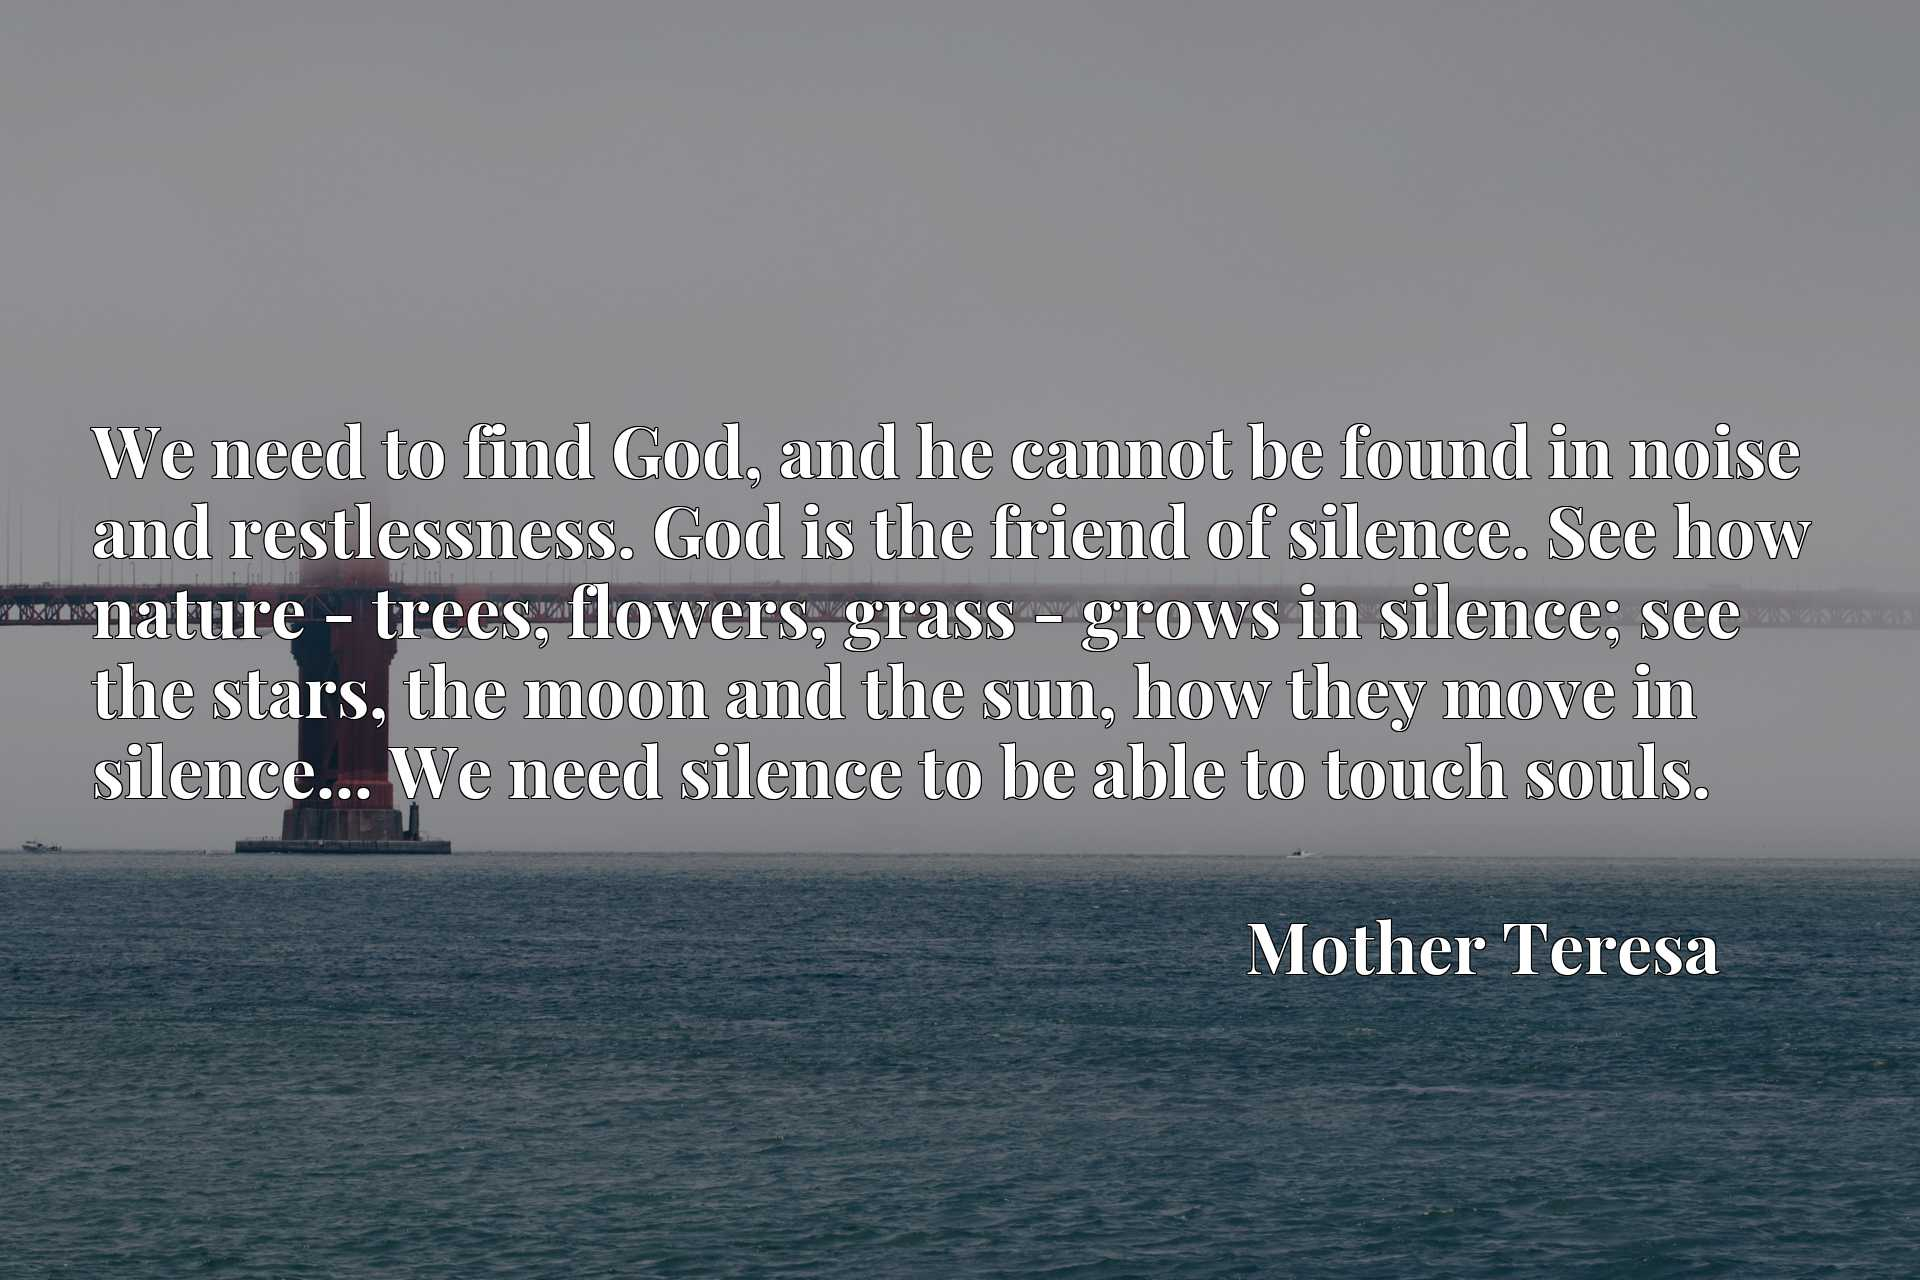 We need to find God, and he cannot be found in noise and restlessness. God is the friend of silence. See how nature - trees, flowers, grass - grows in silence; see the stars, the moon and the sun, how they move in silence... We need silence to be able to touch souls.